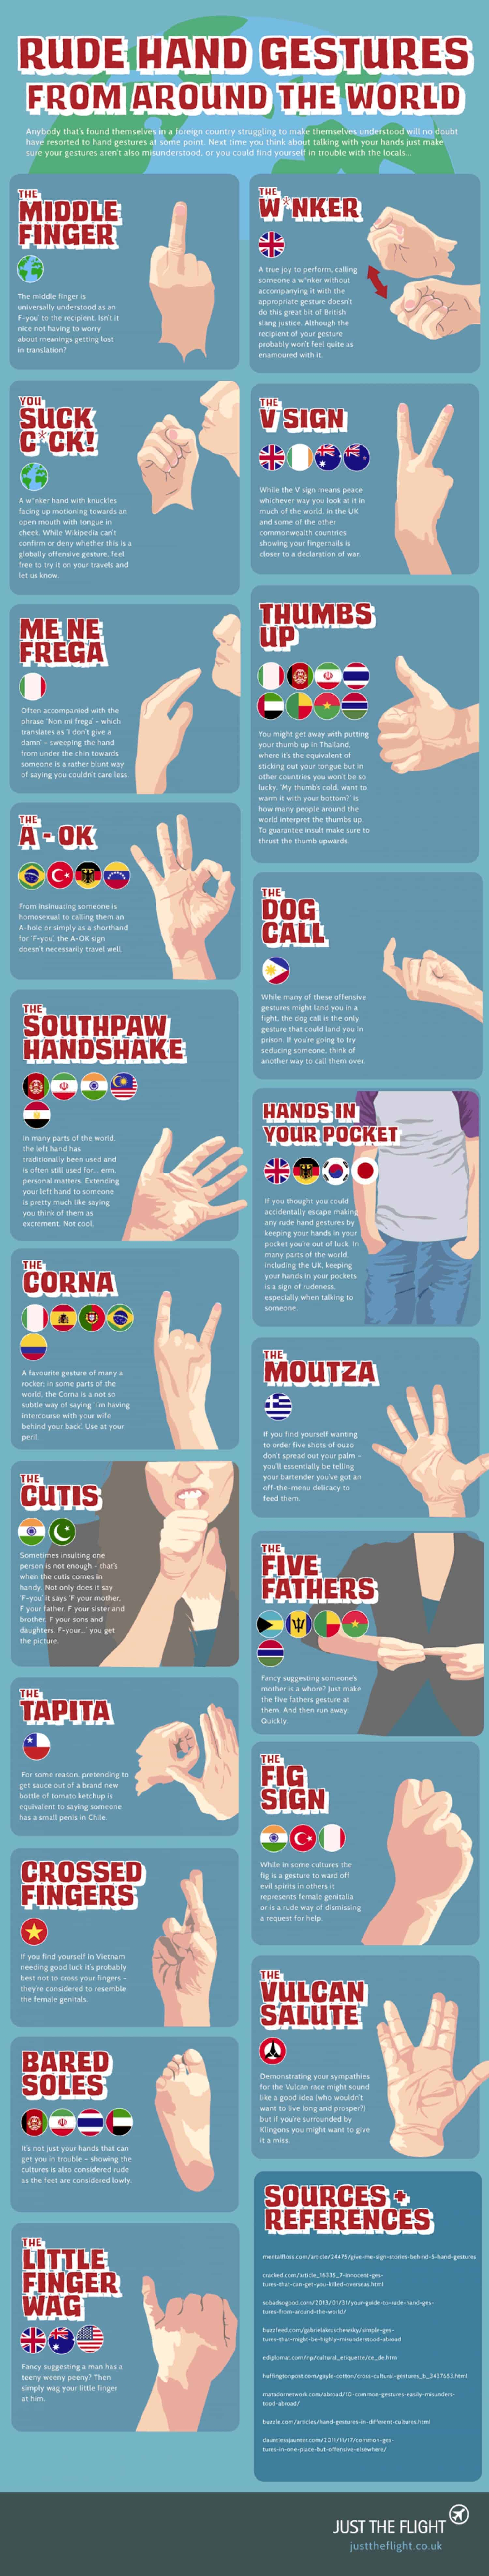 rude-hand-gestures-from-around-the-world_533926556232e_w1500.png